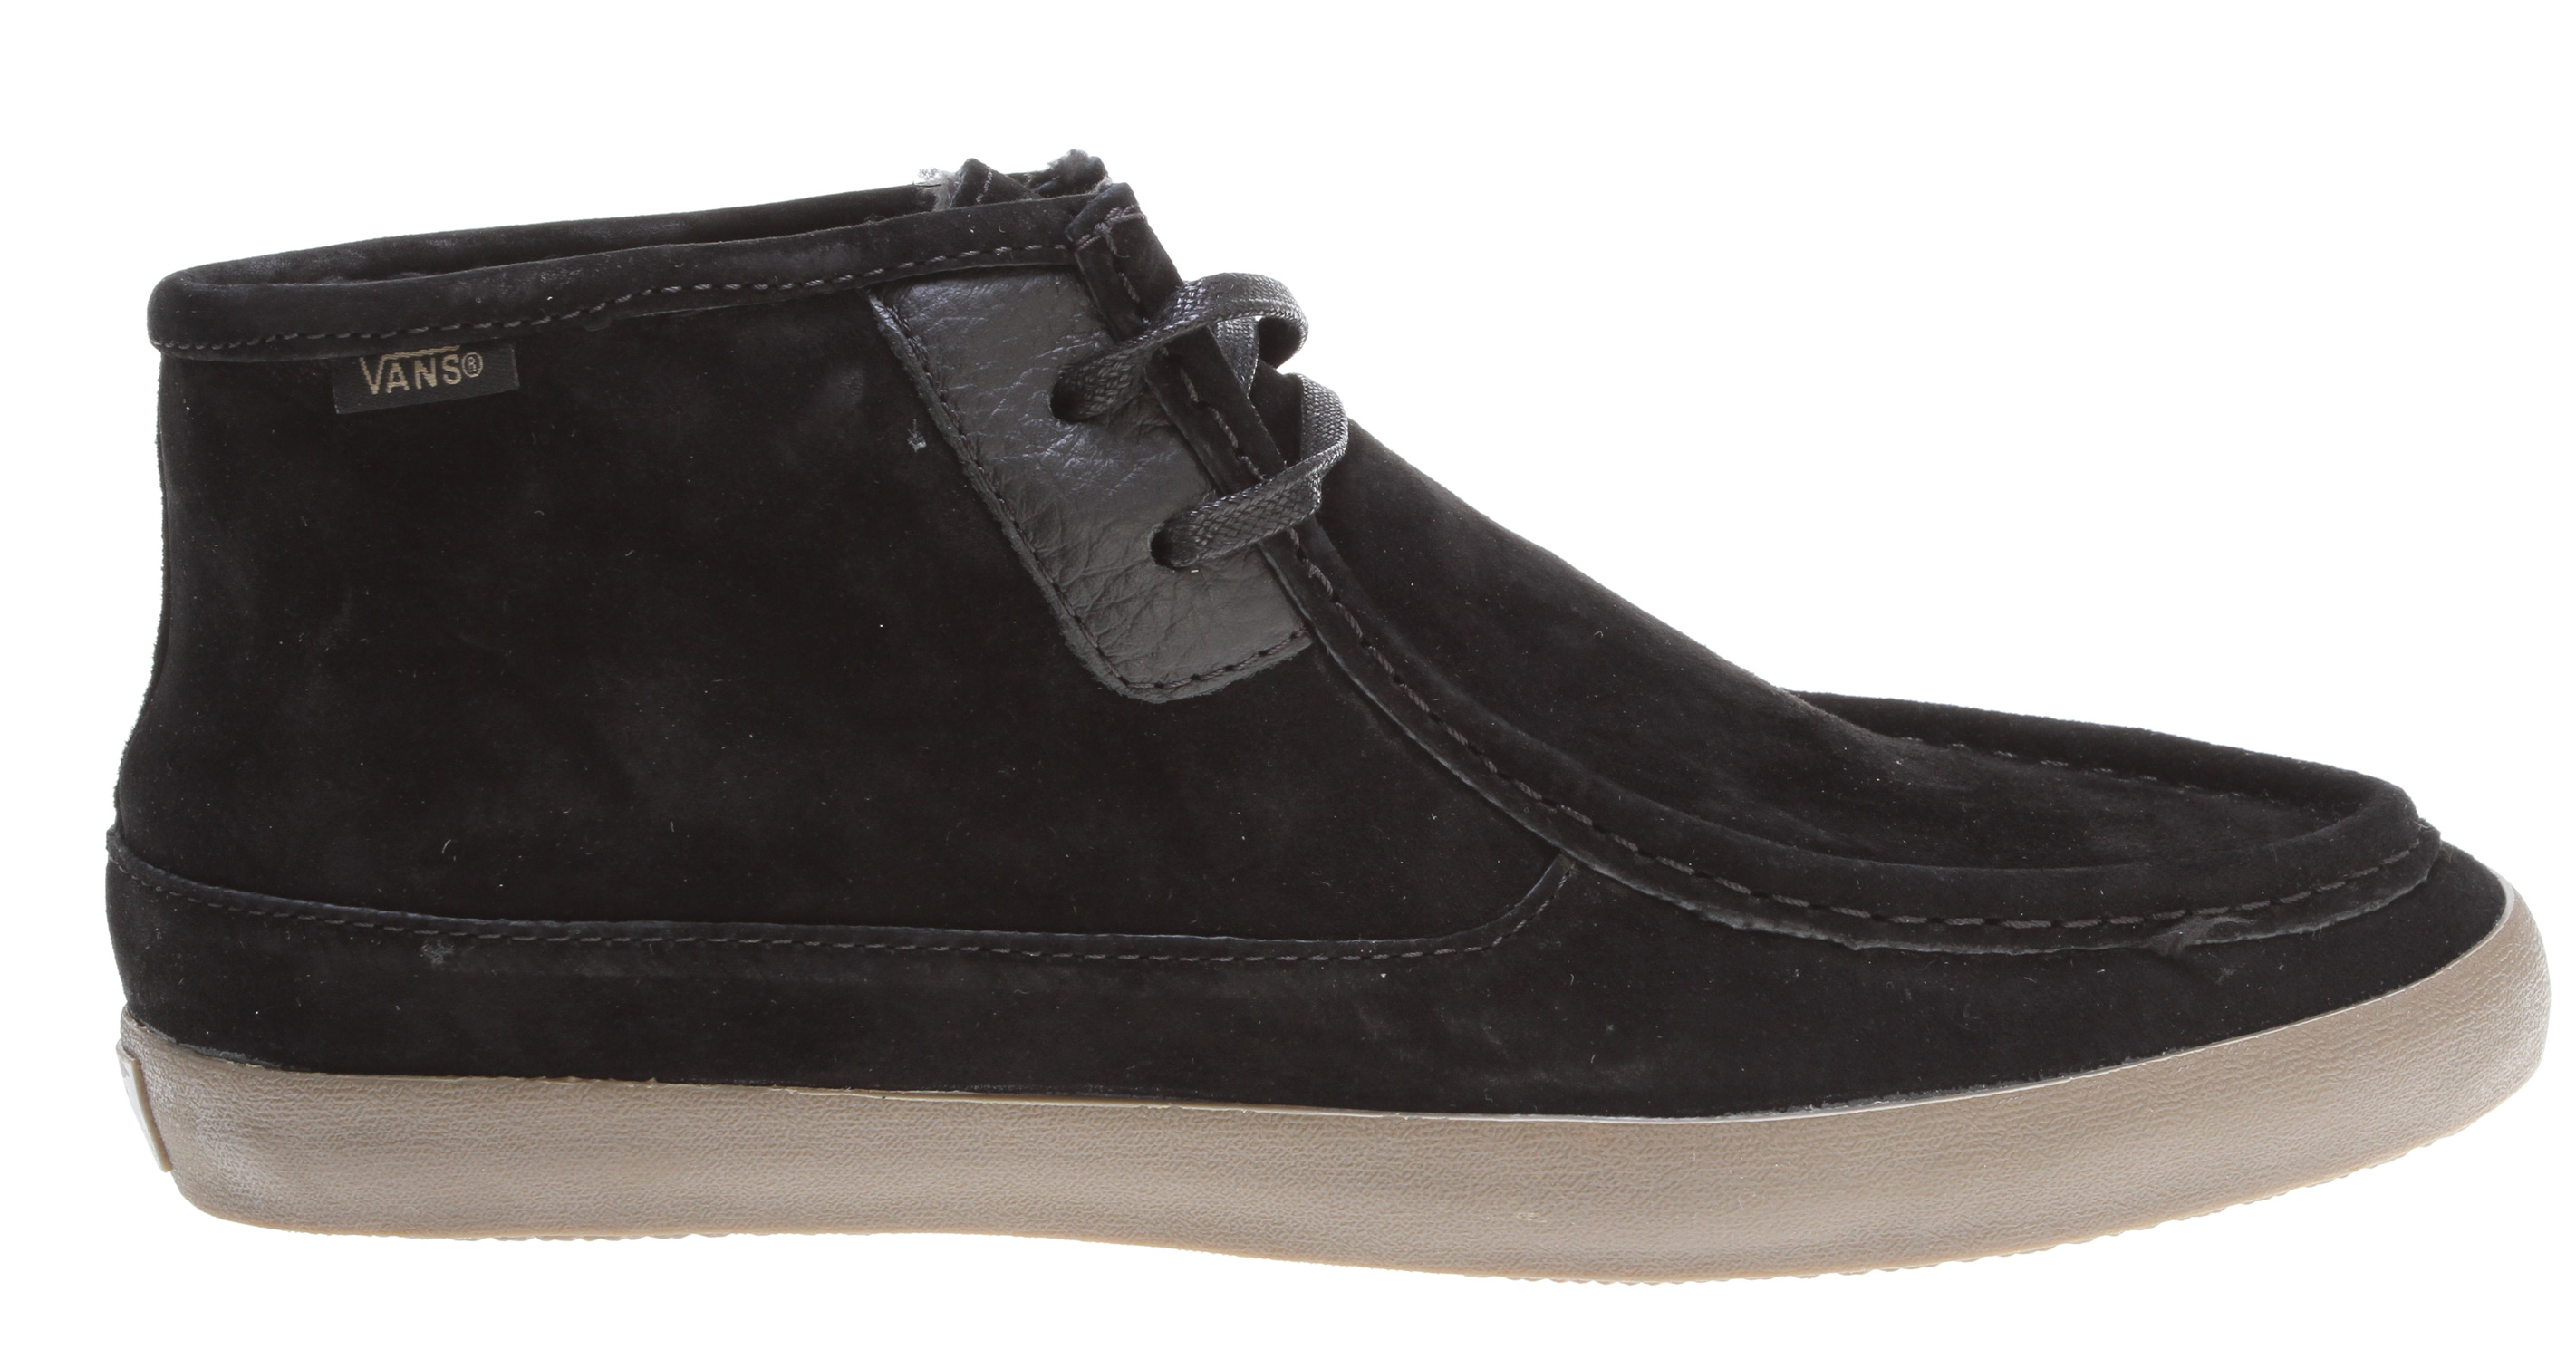 Skateboard Key Features of the Vans Rata Mid Shoes: Suede And Canvas Uppers Removable & Washable Super Comfy Vanslite Footbed Ultra Flexible Vulcanized Gum Rubber Outsole Made With Water-Based Inks And Glues A Classic Fit Style - $38.95